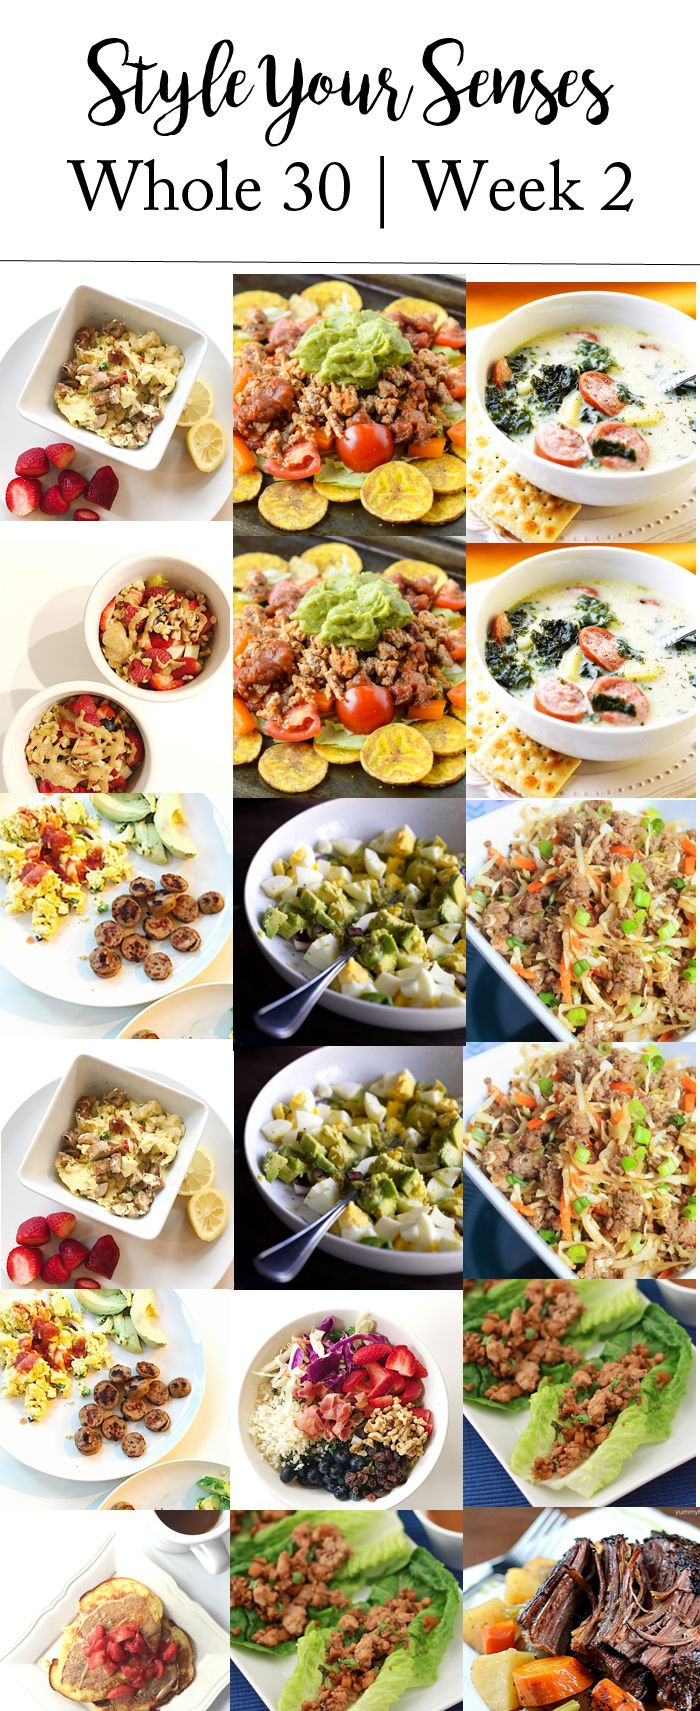 A full Whole 30 Week 1 Update with the good, the bad and the ugly sides of the plan, along with a full Week 2 Meal Plan and some tips.